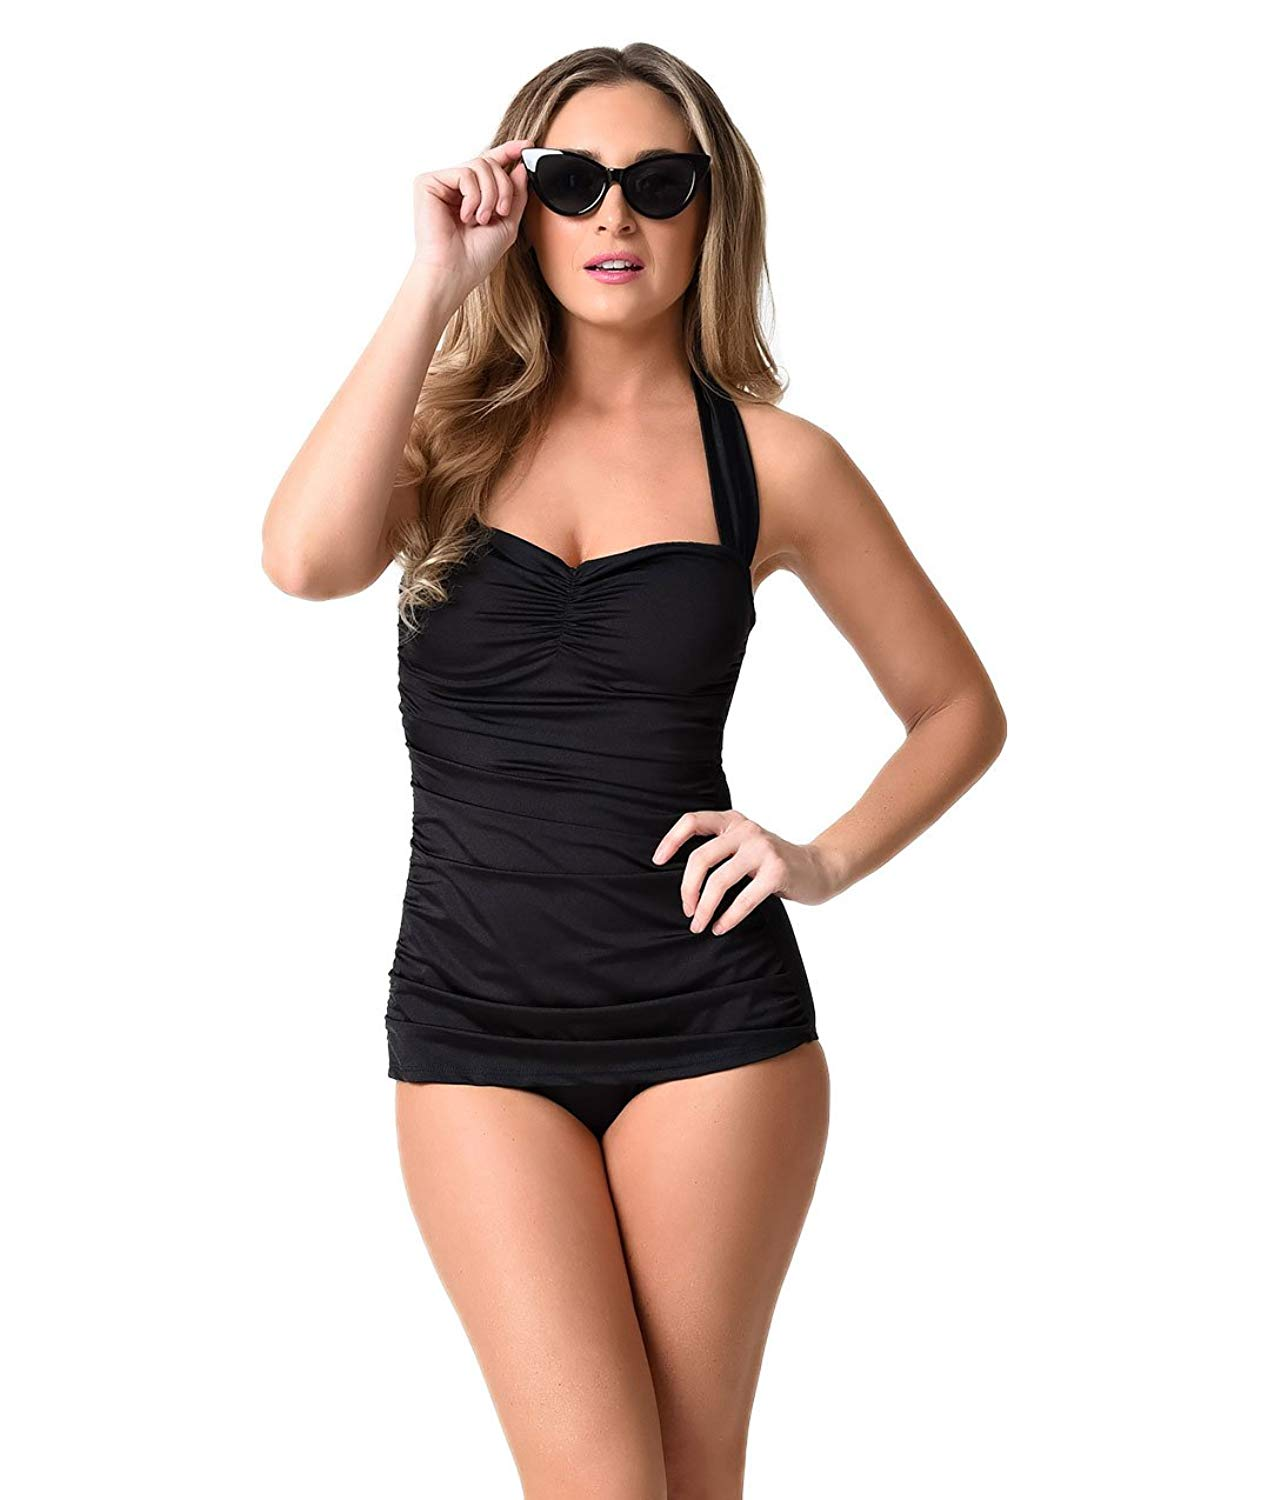 04e21e0fb463c Get Quotations · Esther Williams Vintage Inspired 1950s Black Sheath  Swimsuit